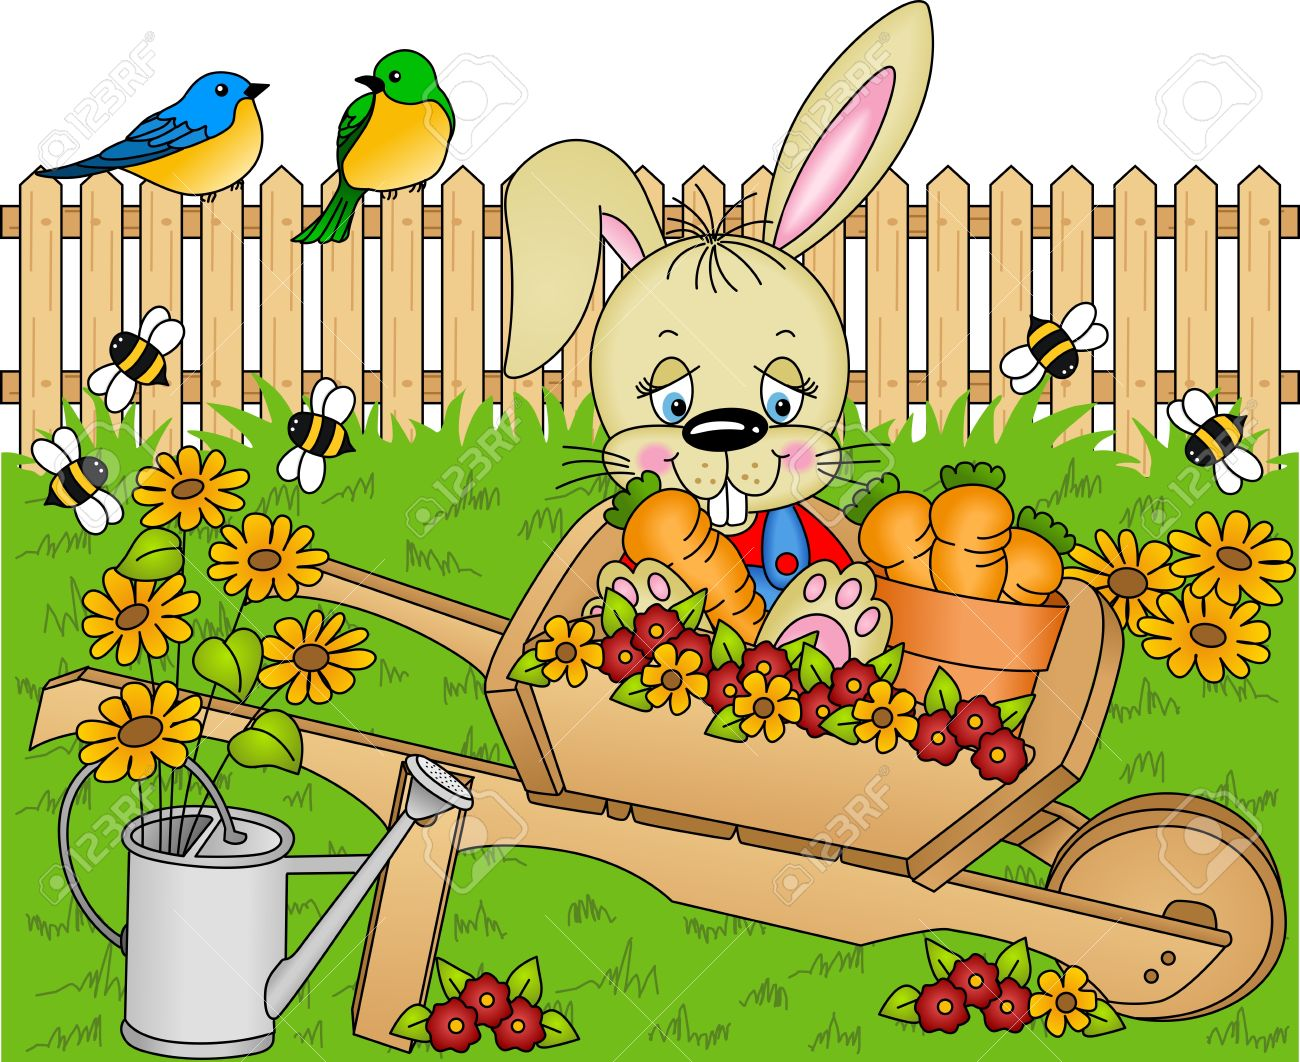 Rabbit Harvest Carrots In The Garden Royalty Free Cliparts.